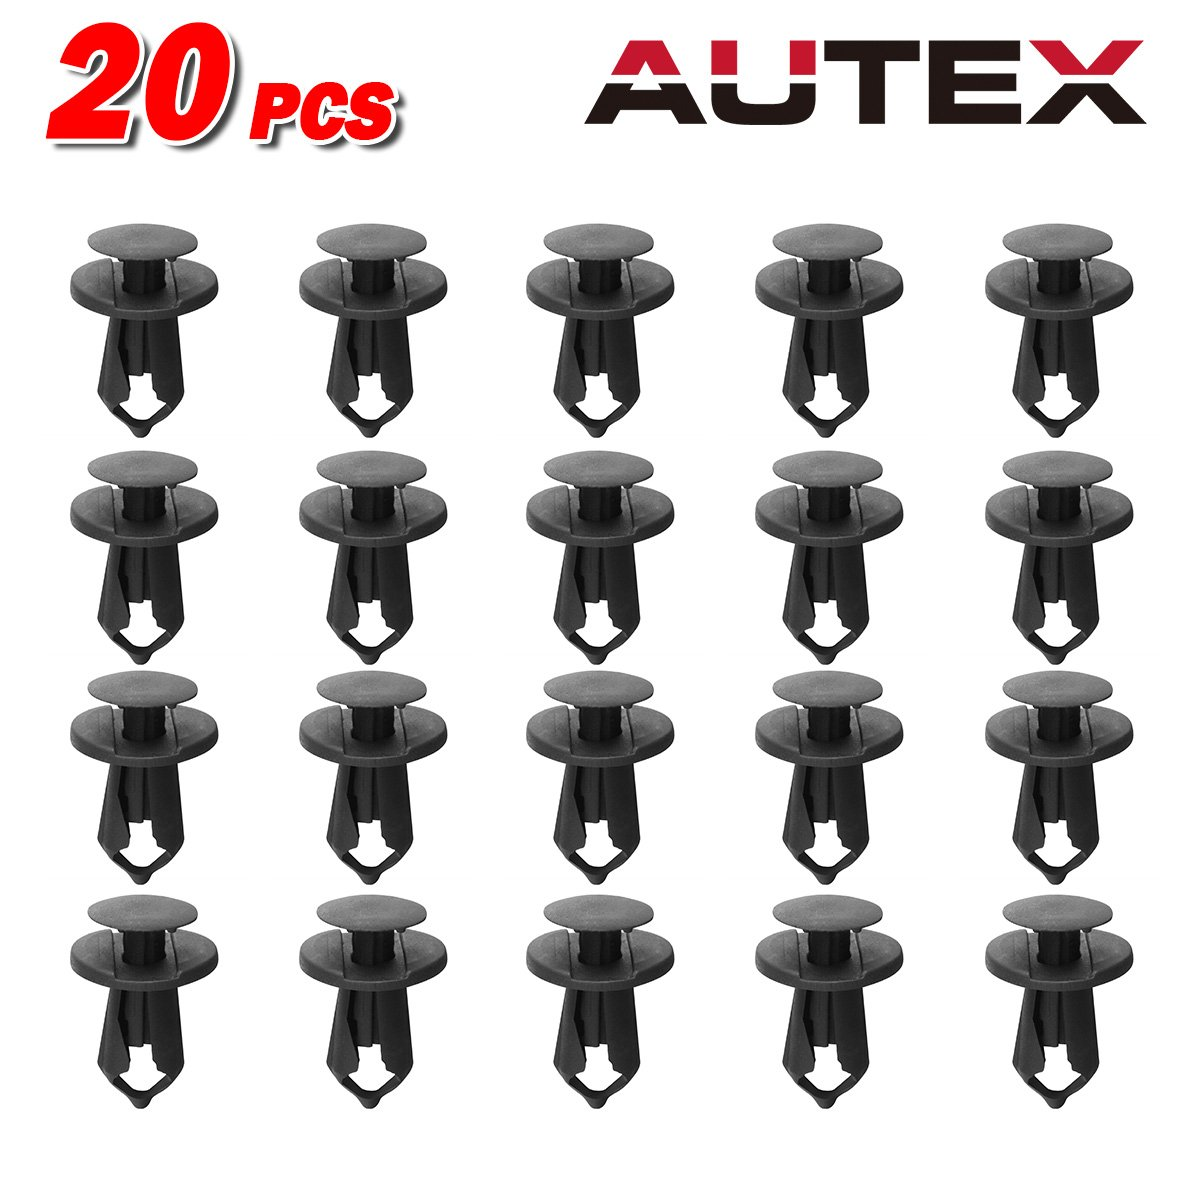 Partssquare 20pcs Fender Liner Fastener Rivet Push Clips 2006 Pt Cruiser Starter Wiring Diagram Retainer For Ford Chrysler Dodge Lincoln Jeep Plymouth Automotive